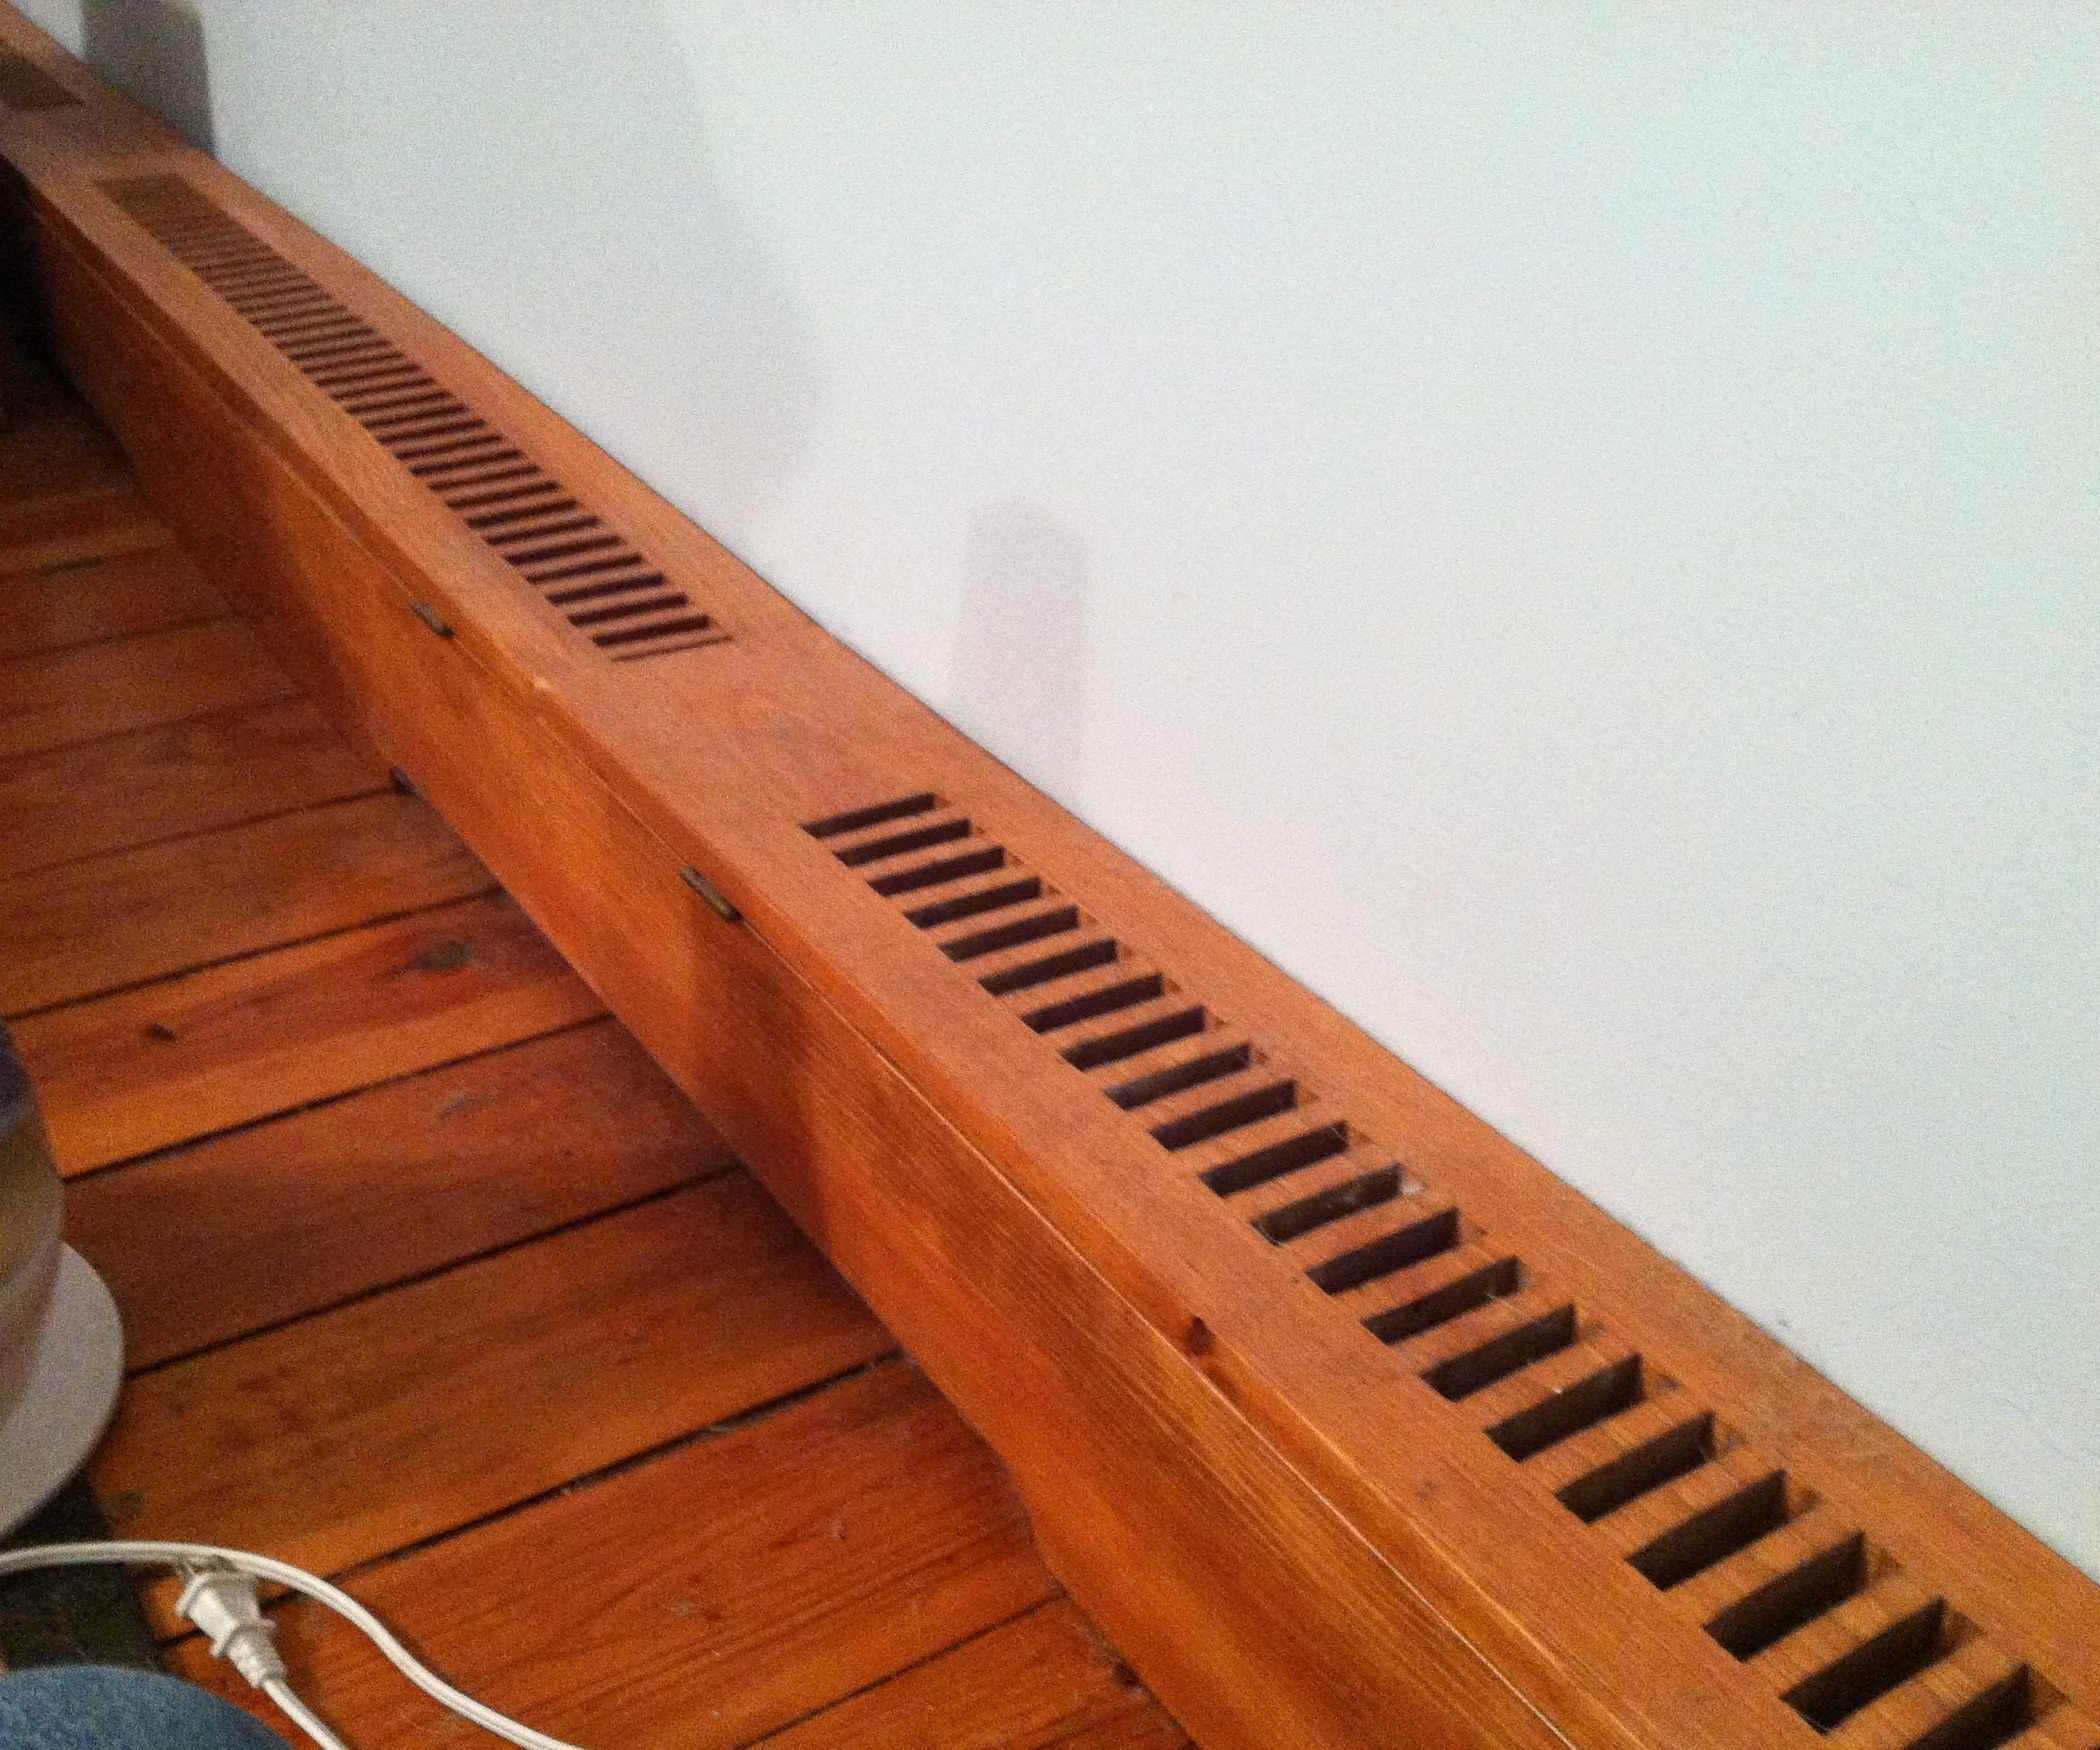 How To Make Wooden Baseboard Heater Covers Baseboard